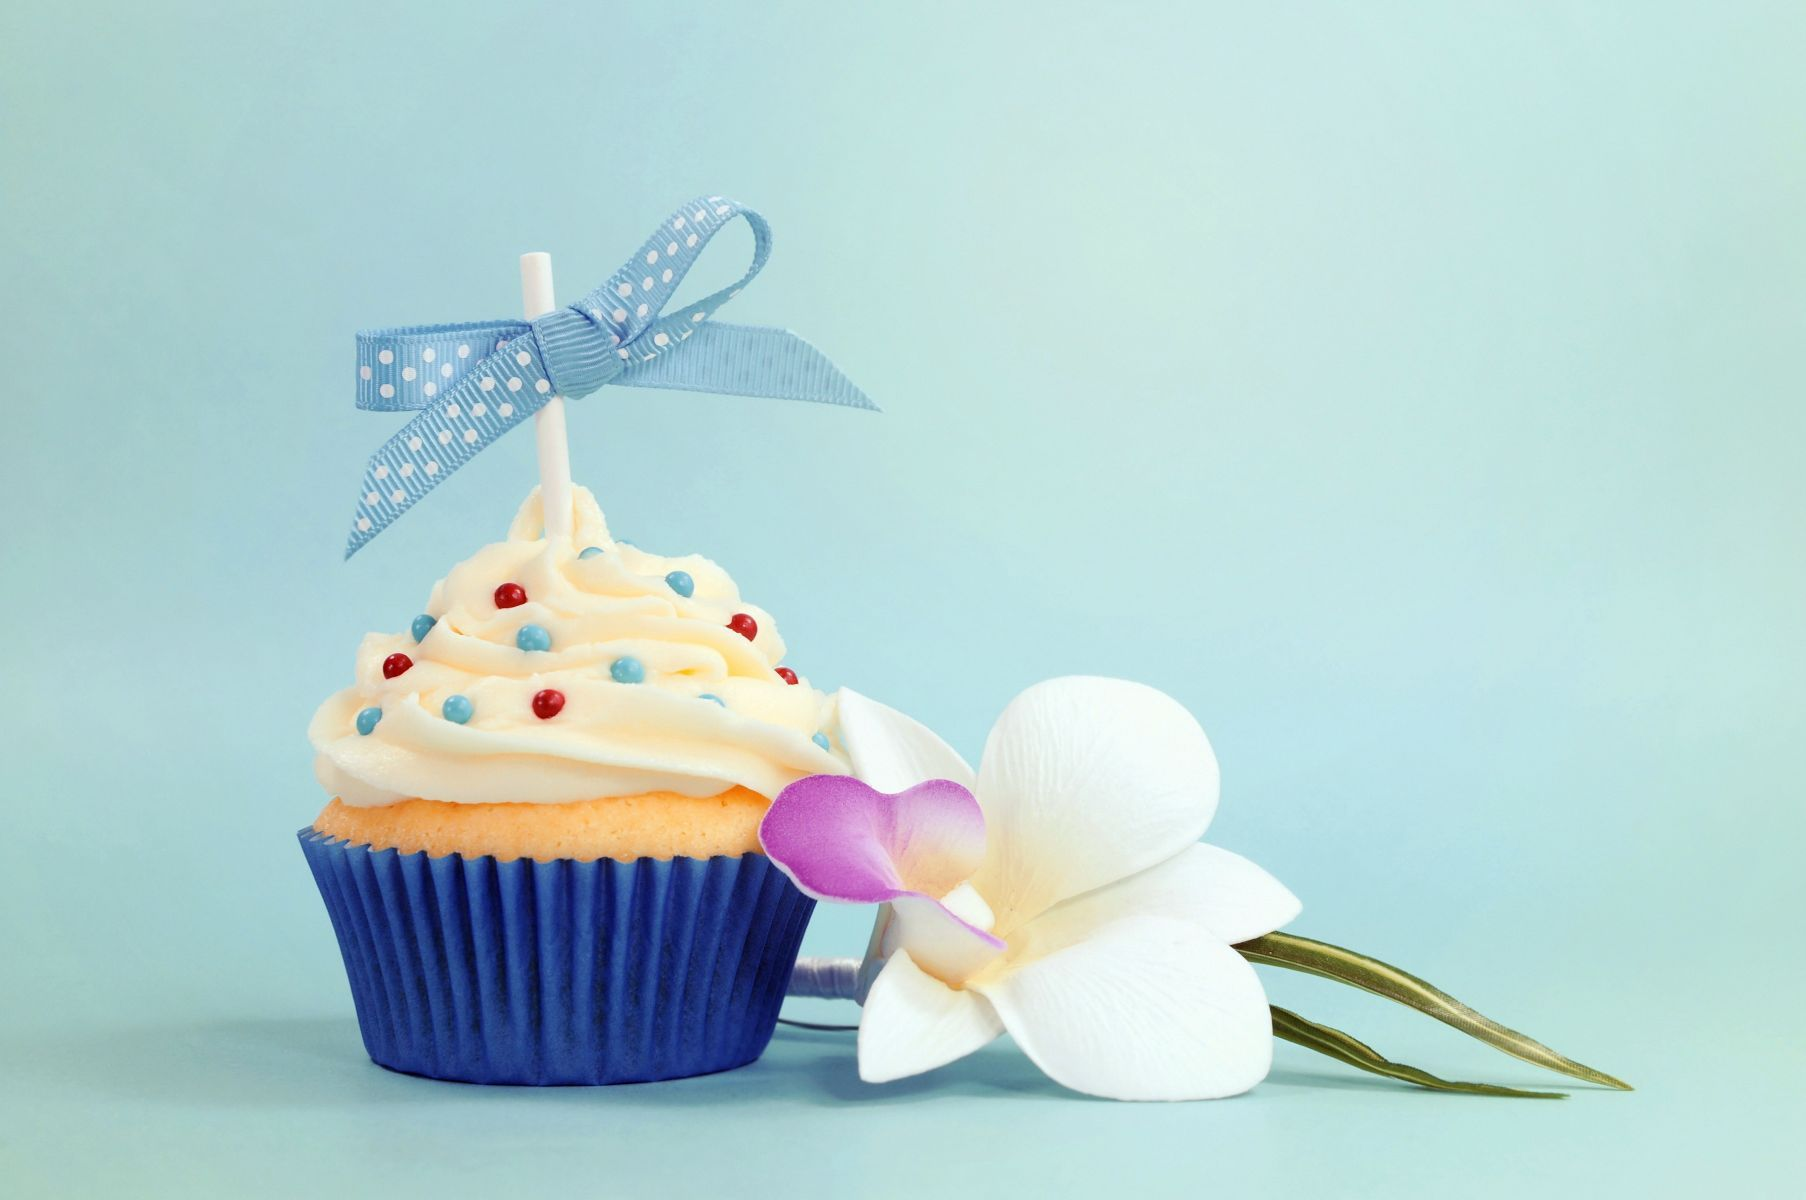 Hd wallpaper birthday - Image Result For Happy Birthday Hd Wallpaper 1920x1080 Png